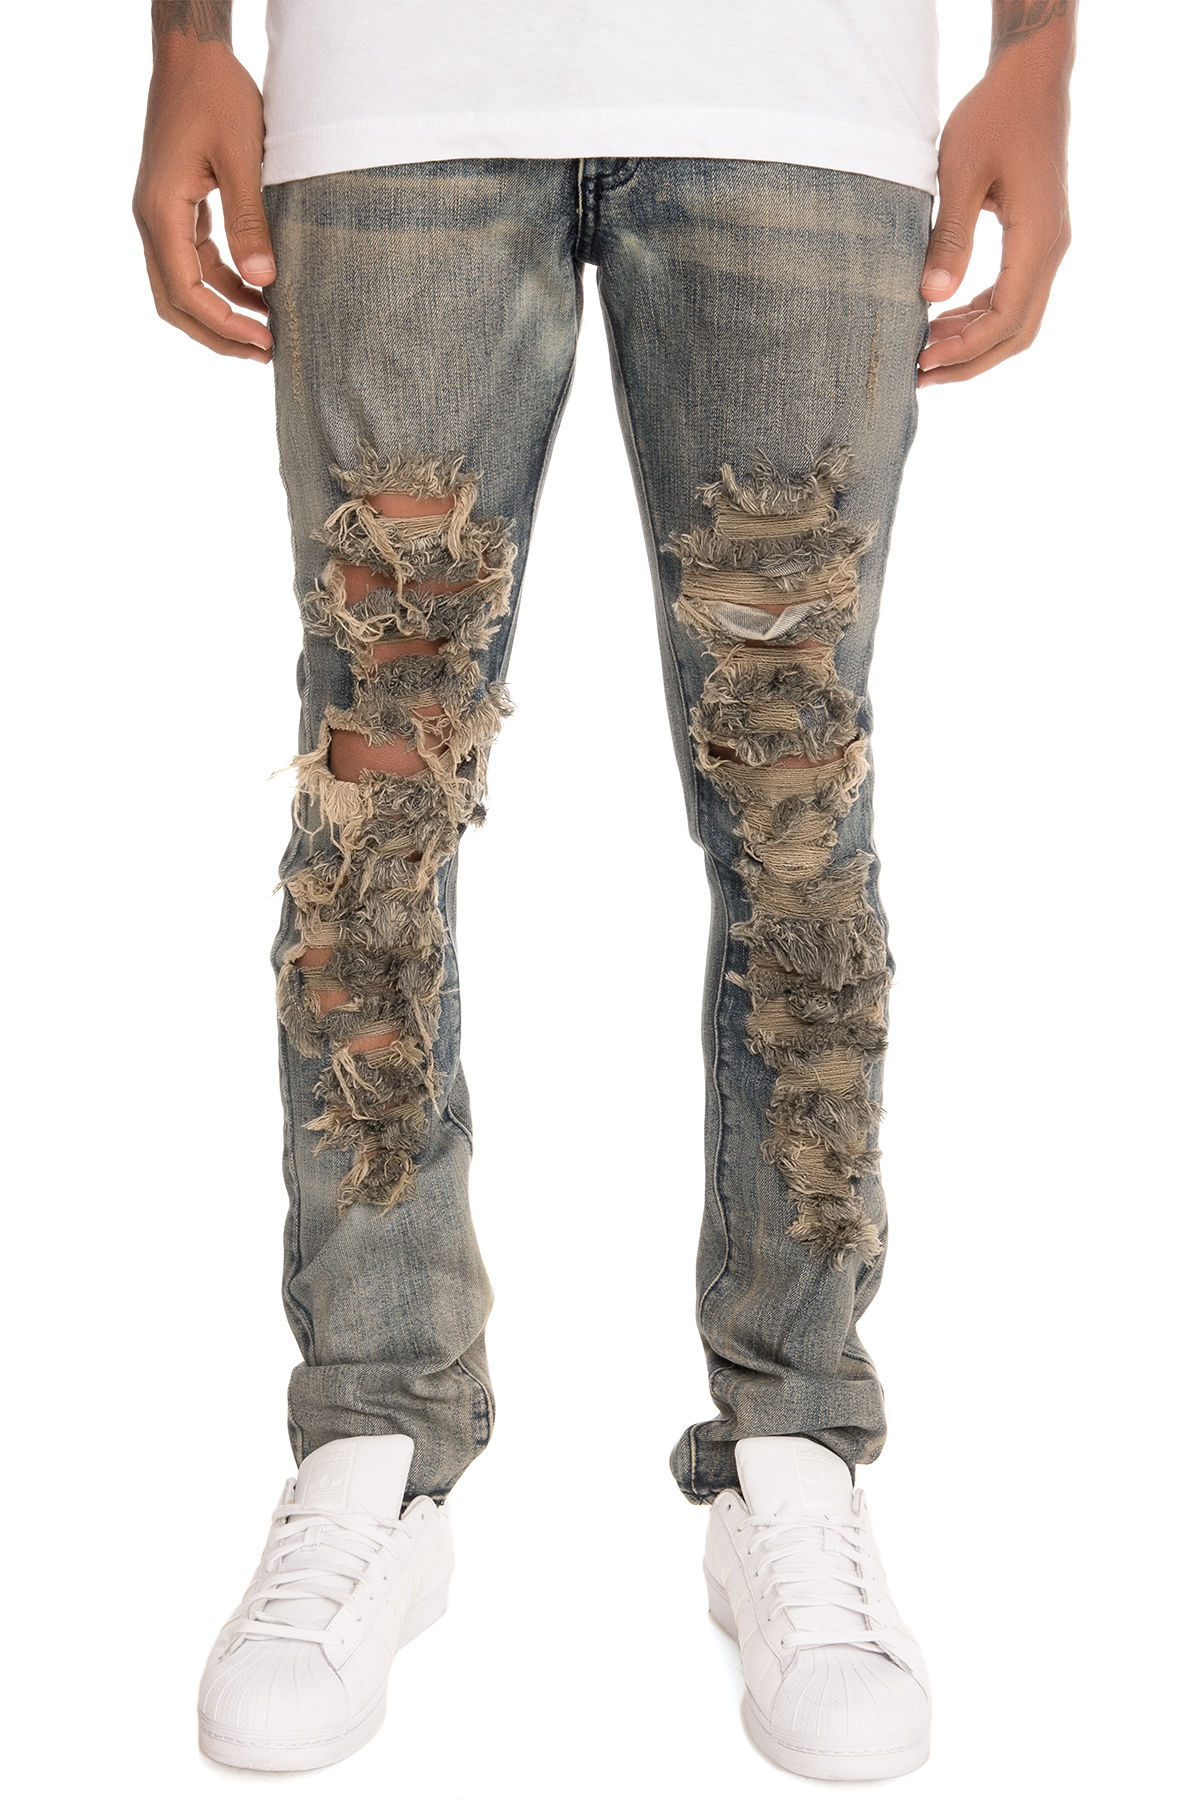 Image of The Tattered Denim Jeans in Vintage Distress